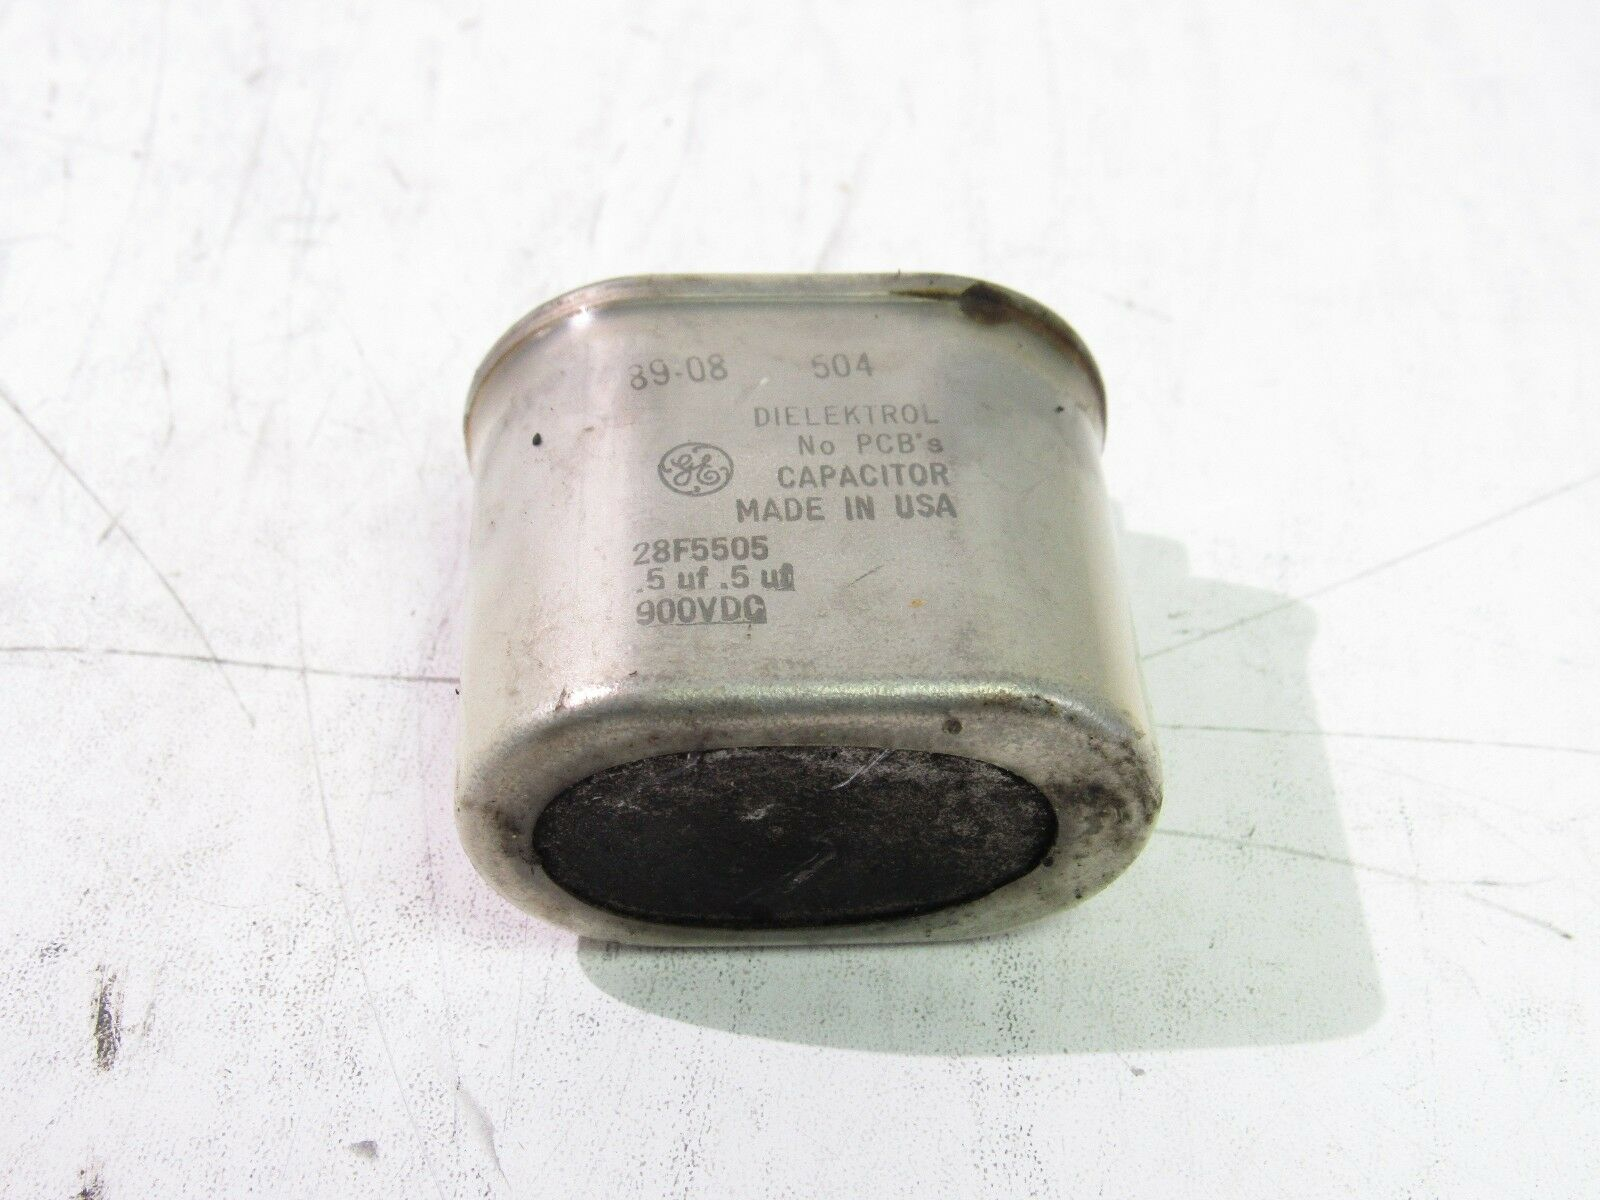 General Electric A28F5600S Capacitor 0.05uF 2000VDC FNIP